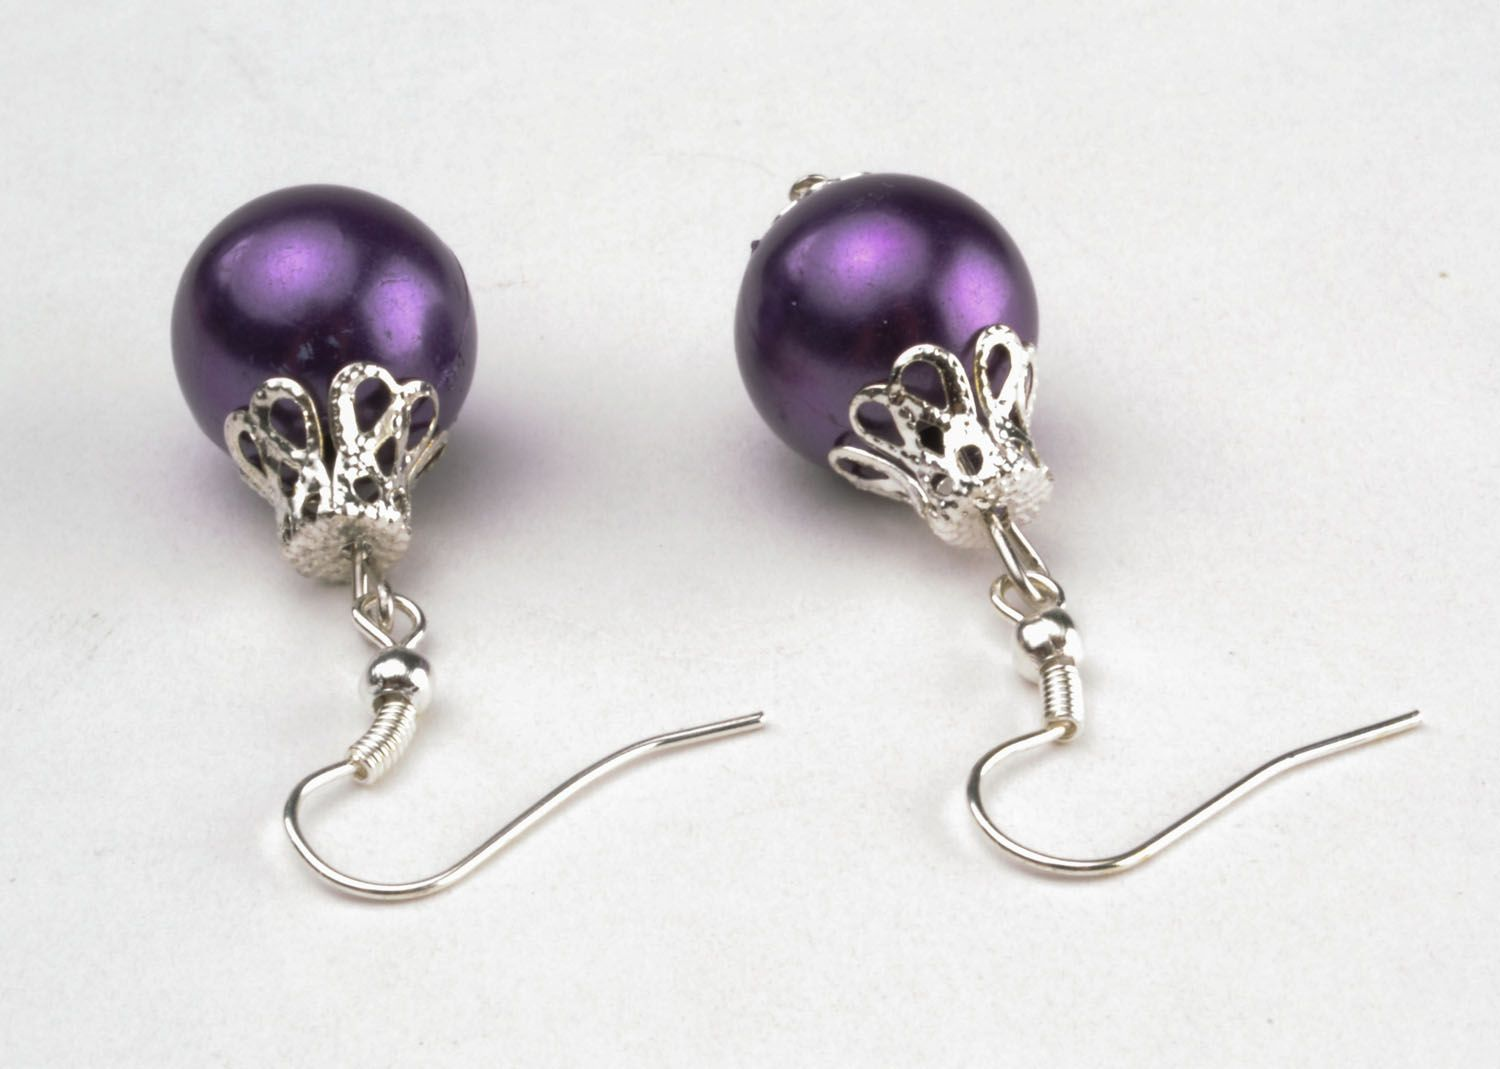 Earrings in the shape of Christmas tree balls photo 2